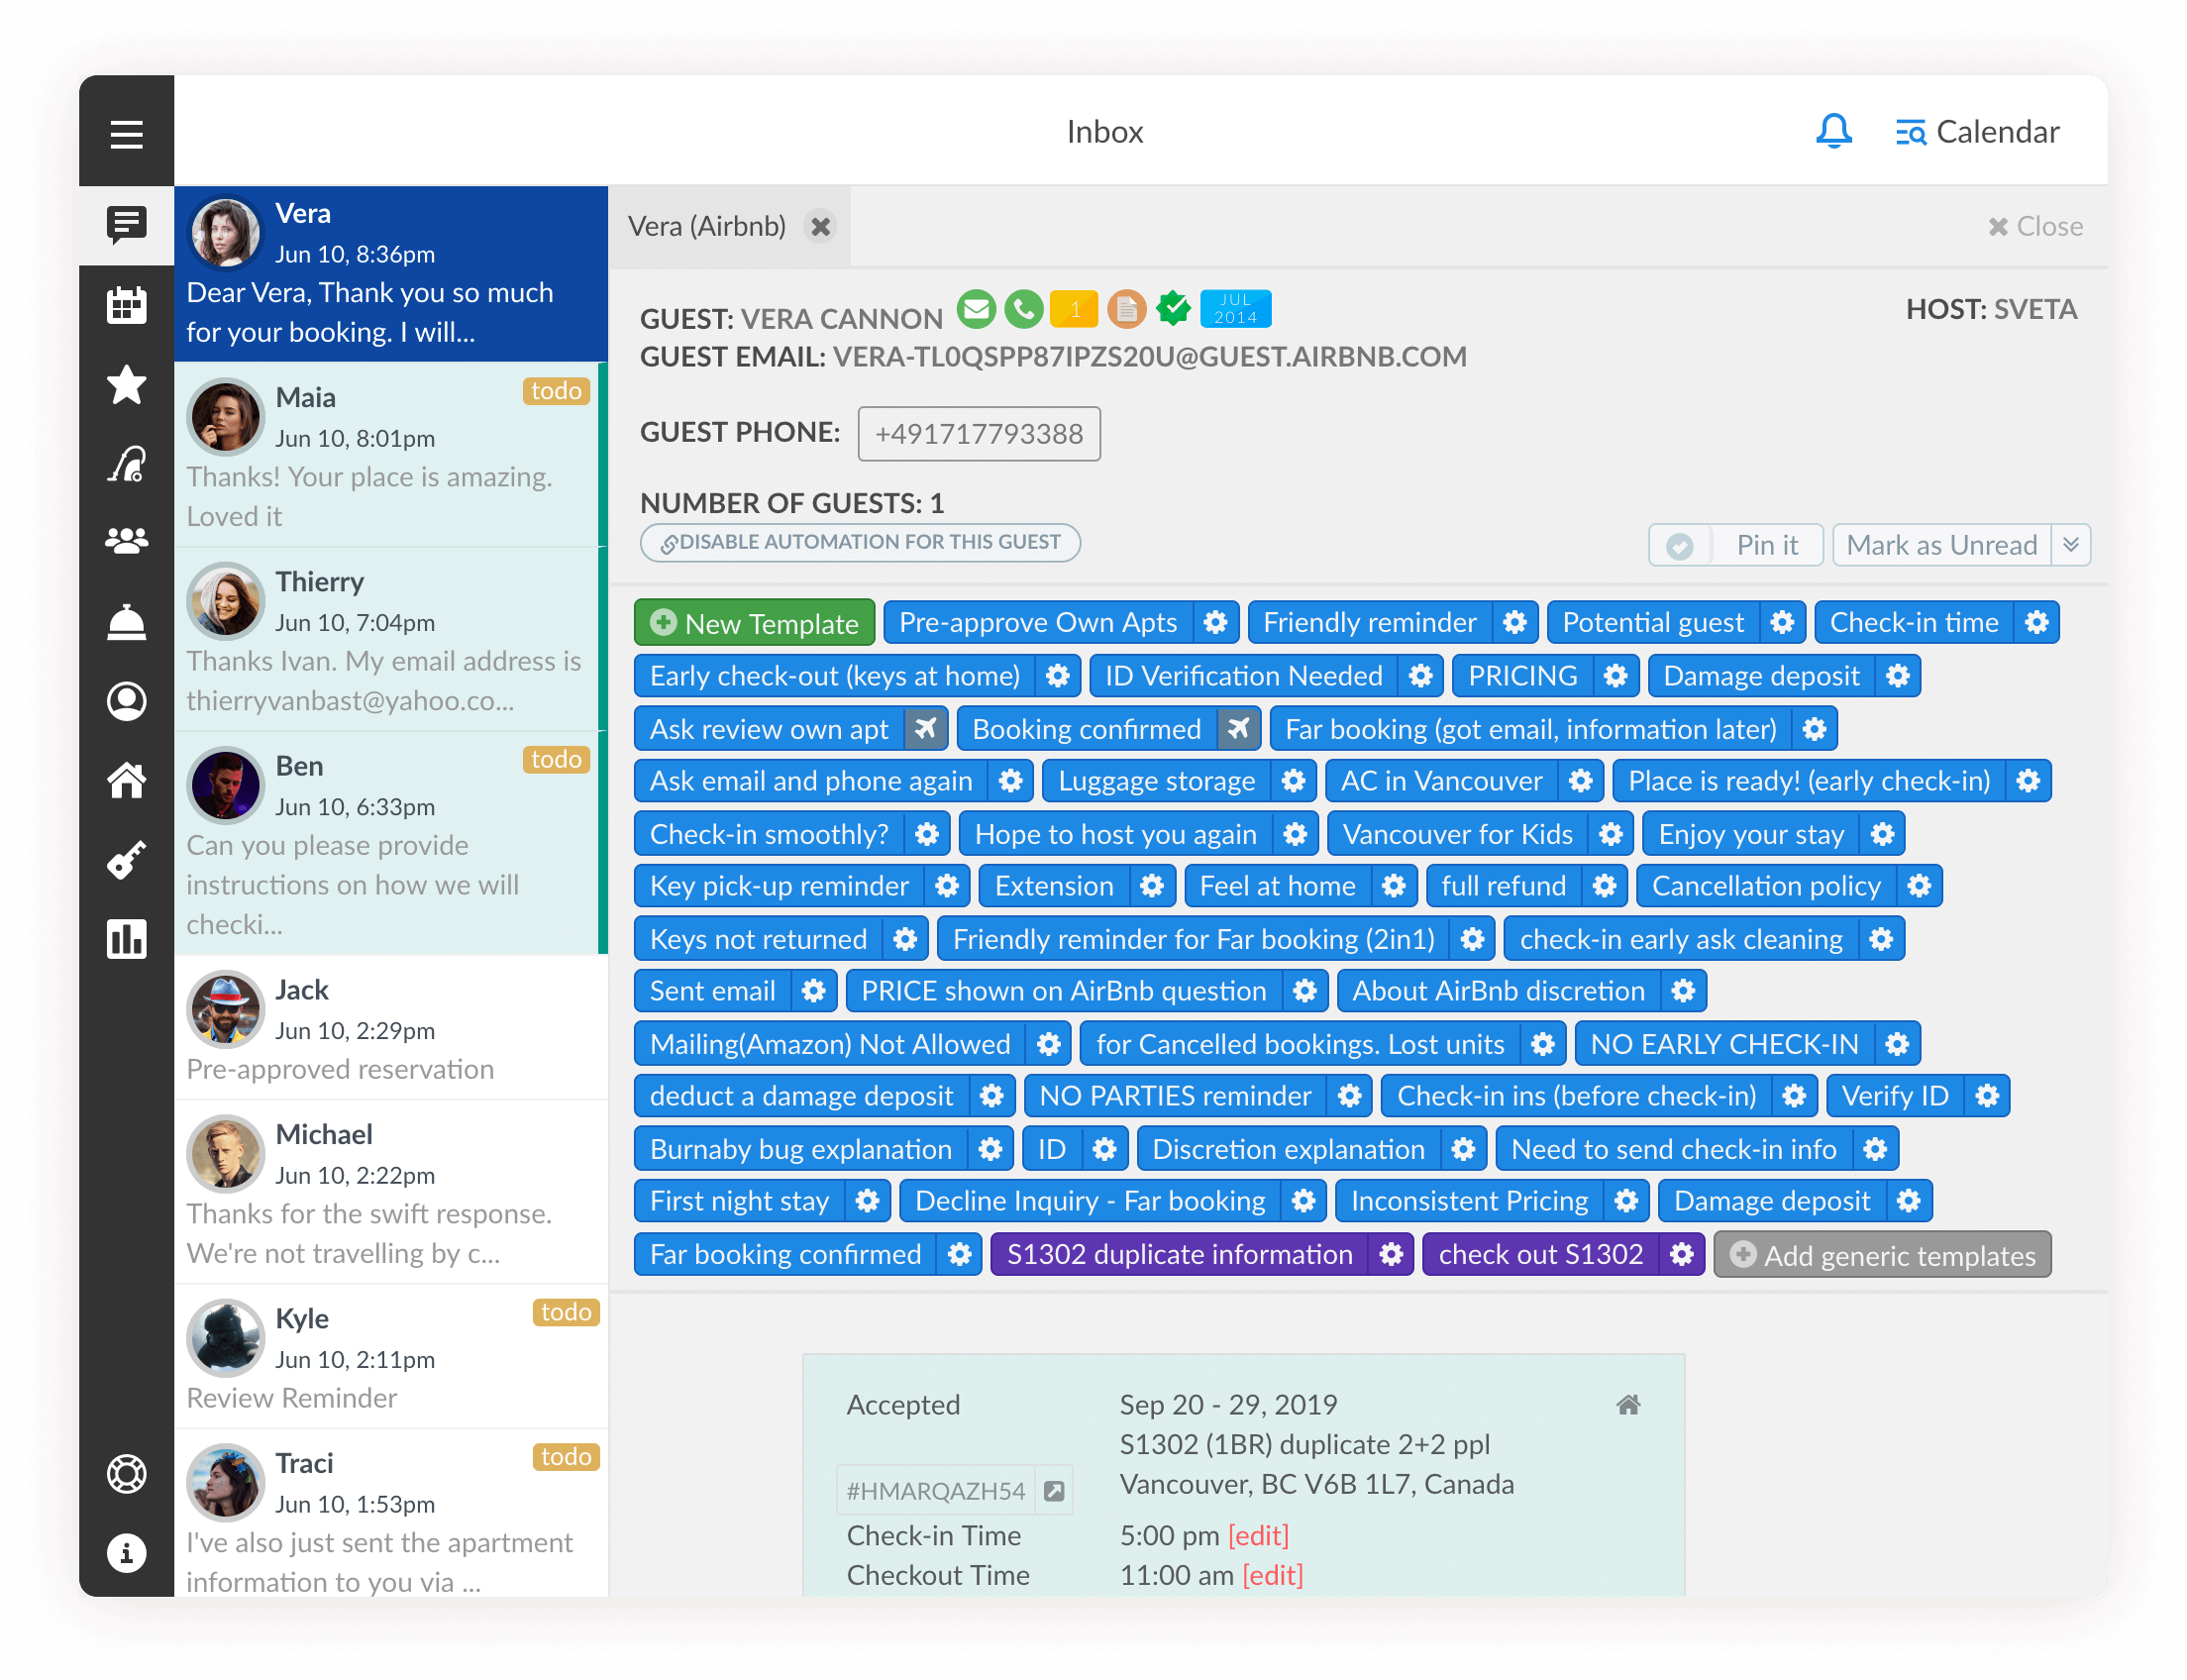 iGMS screenshot: A single inbox to communicate with guests from a variety of accounts